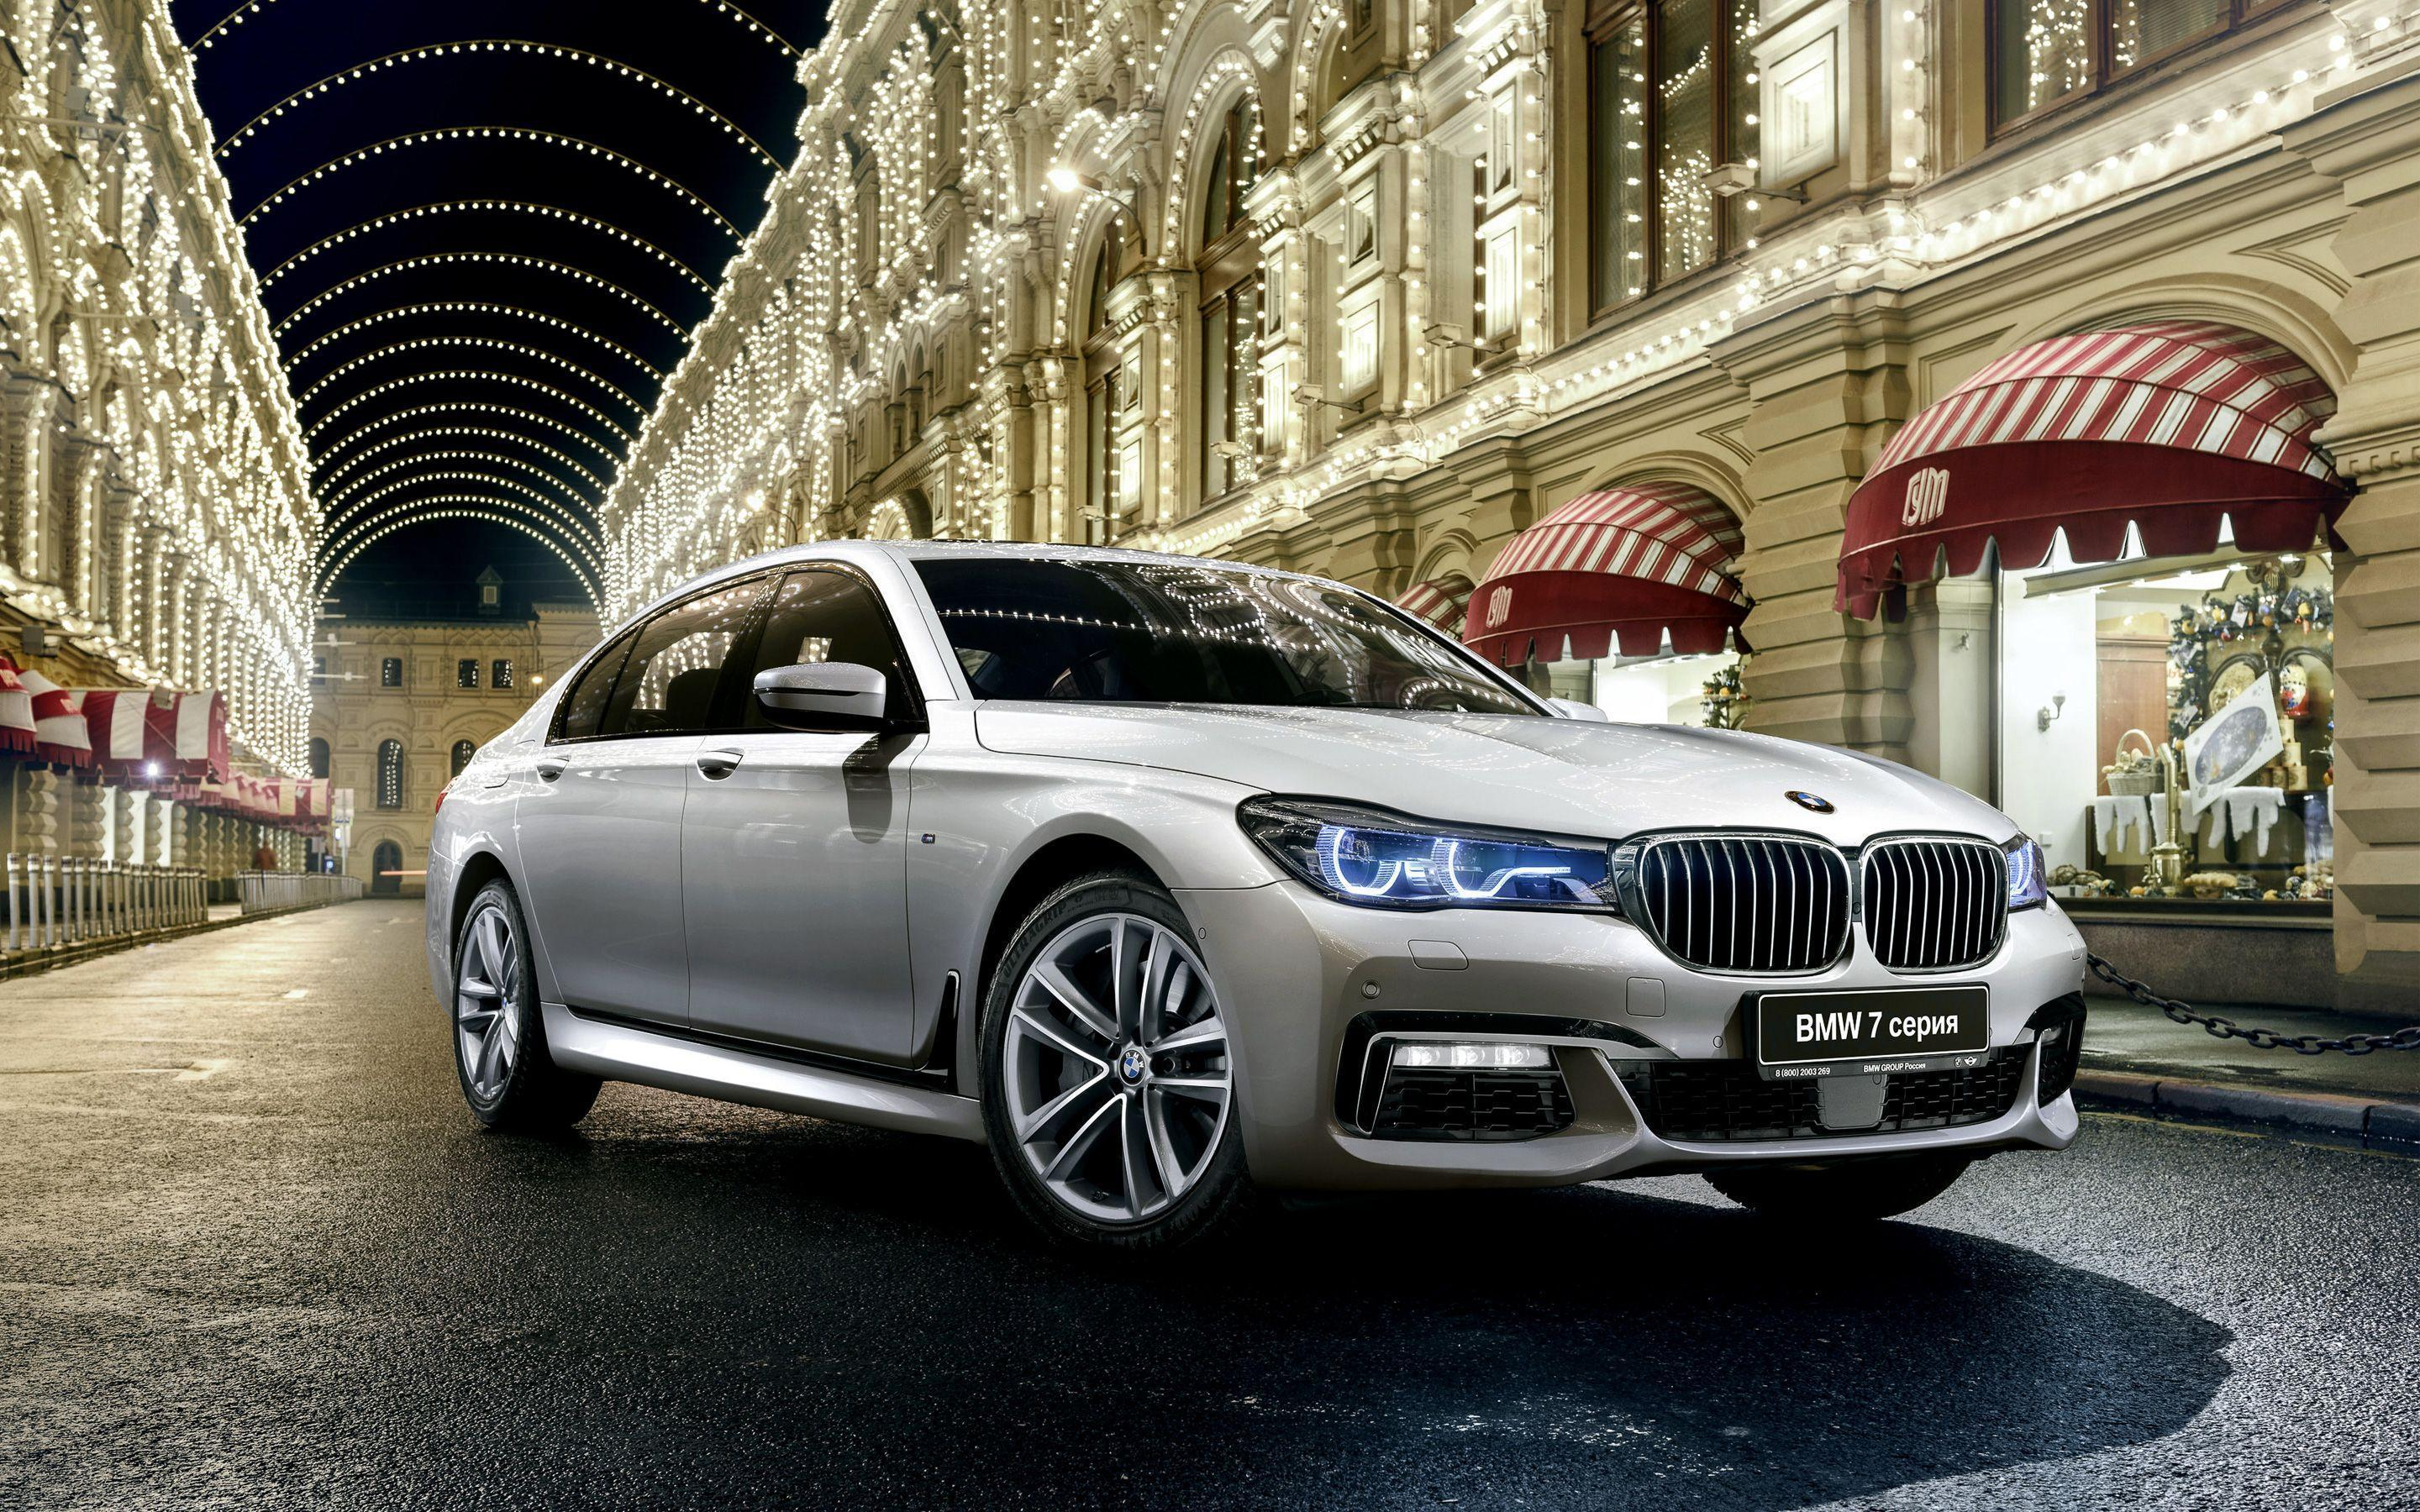 2016 BMW 7 Series Wallpapers